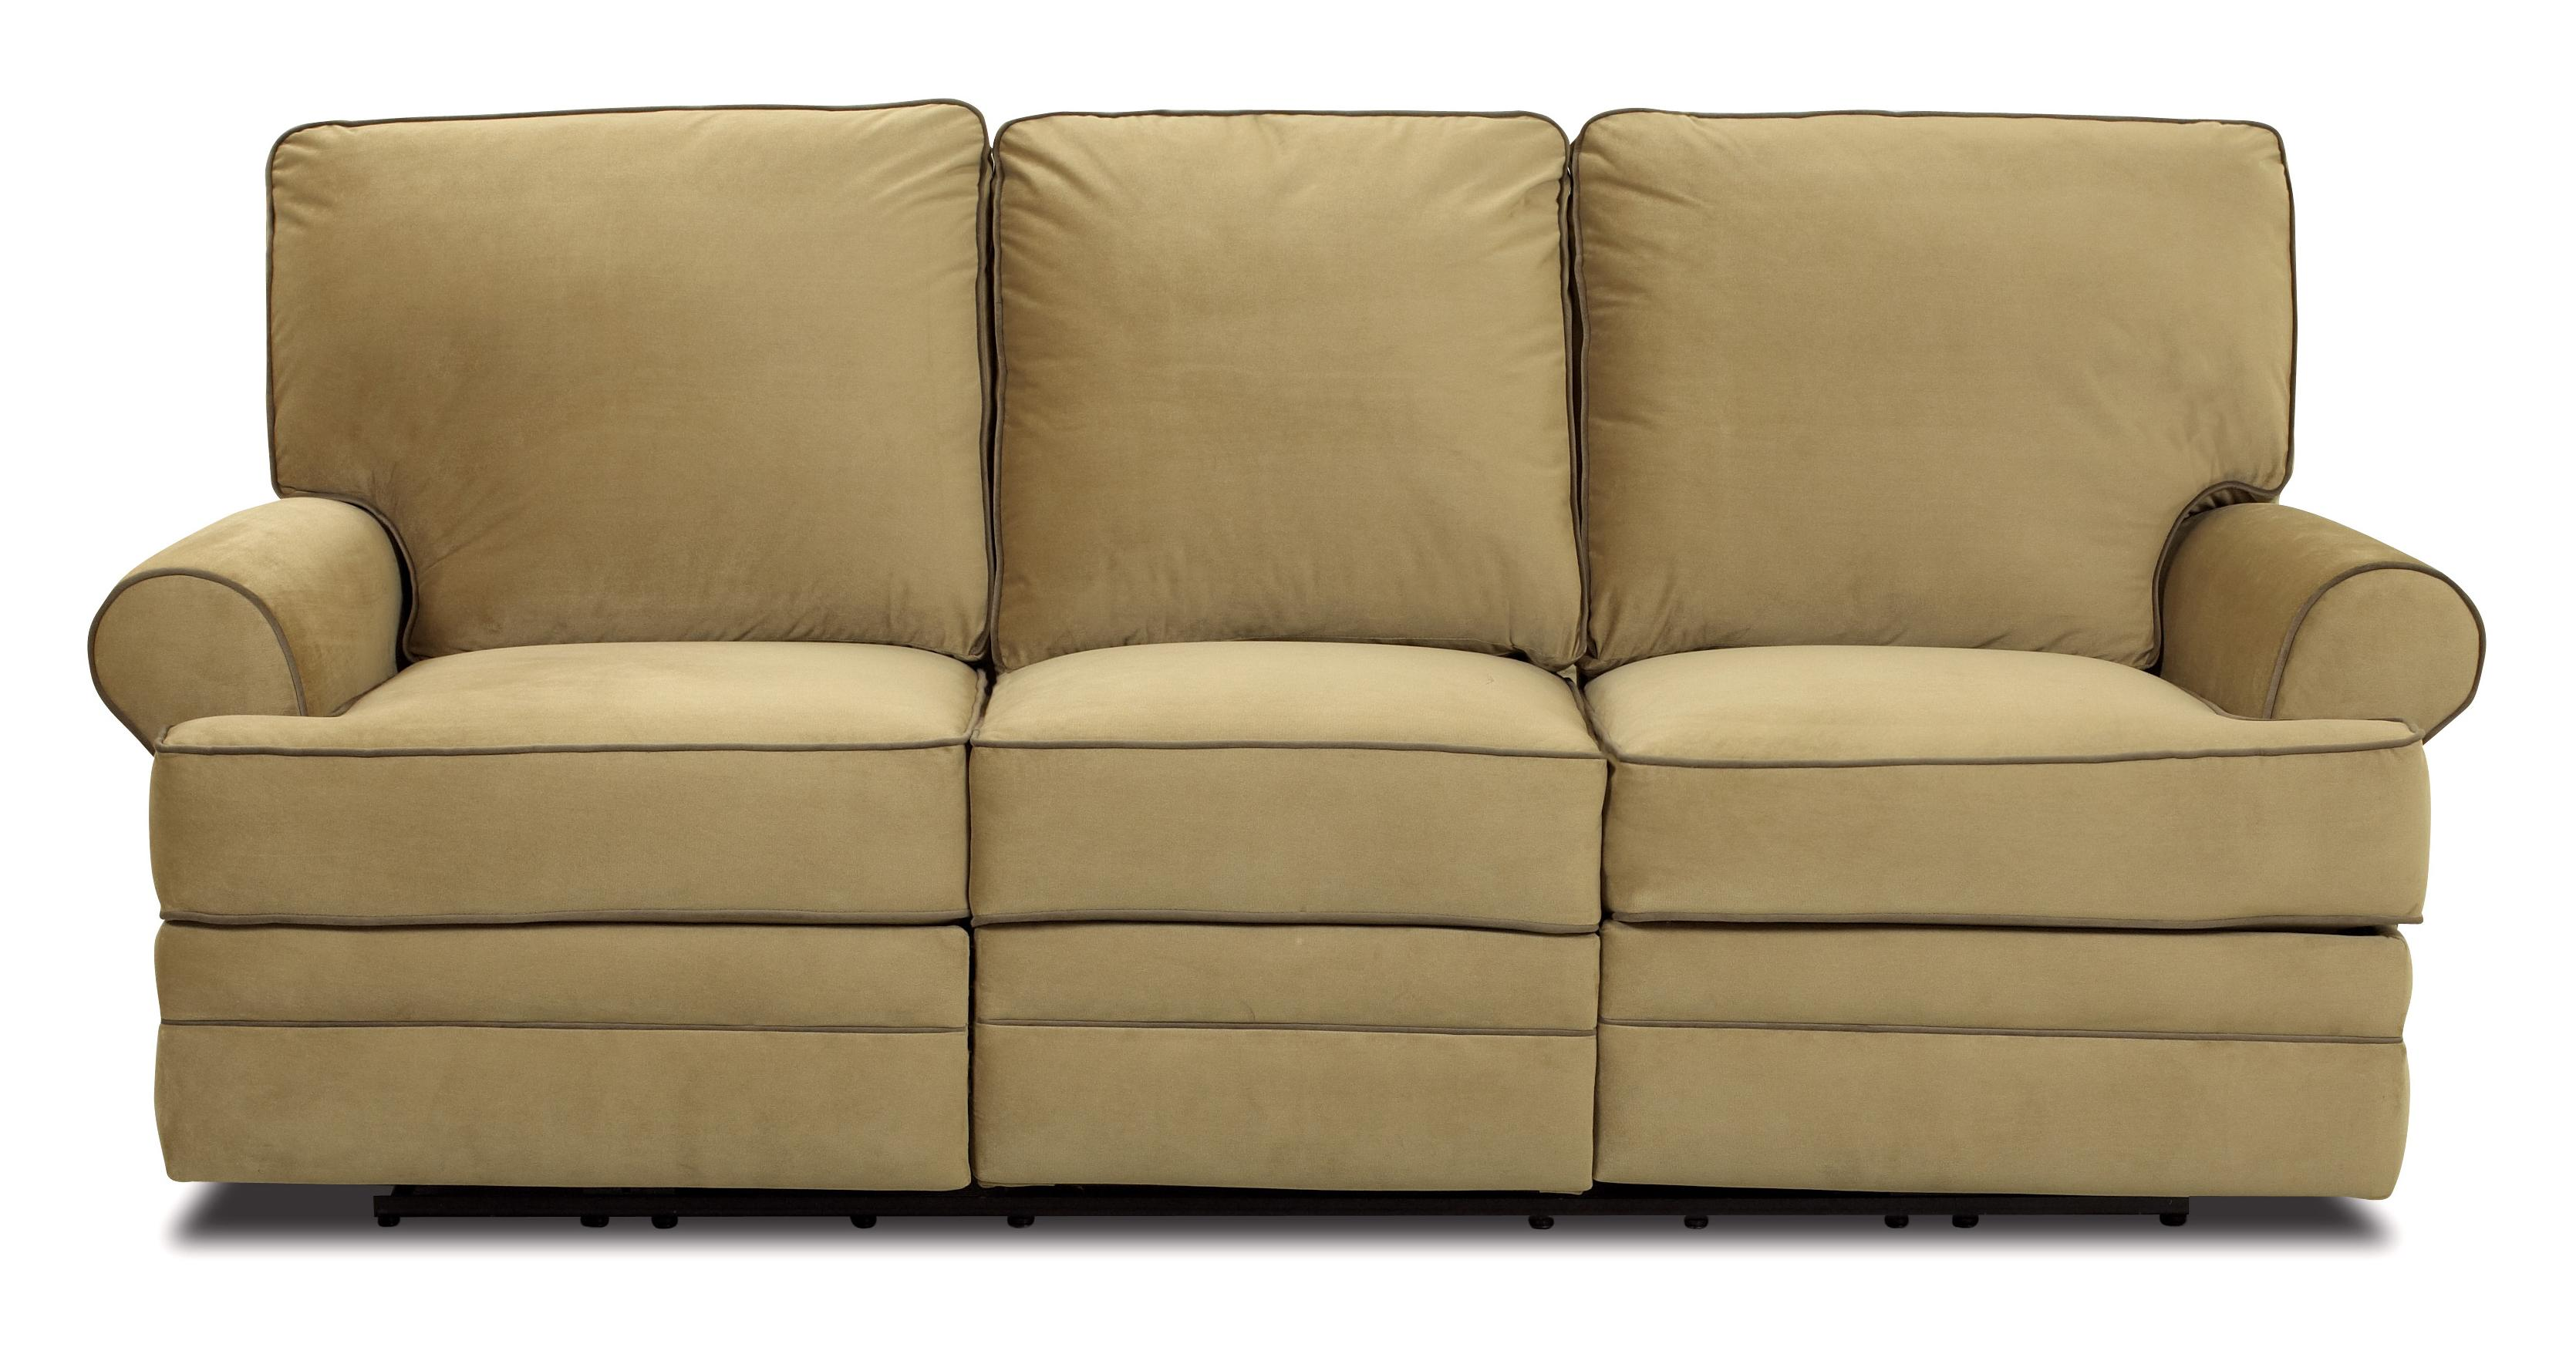 Power dual reclining sofa Loveseats that recline